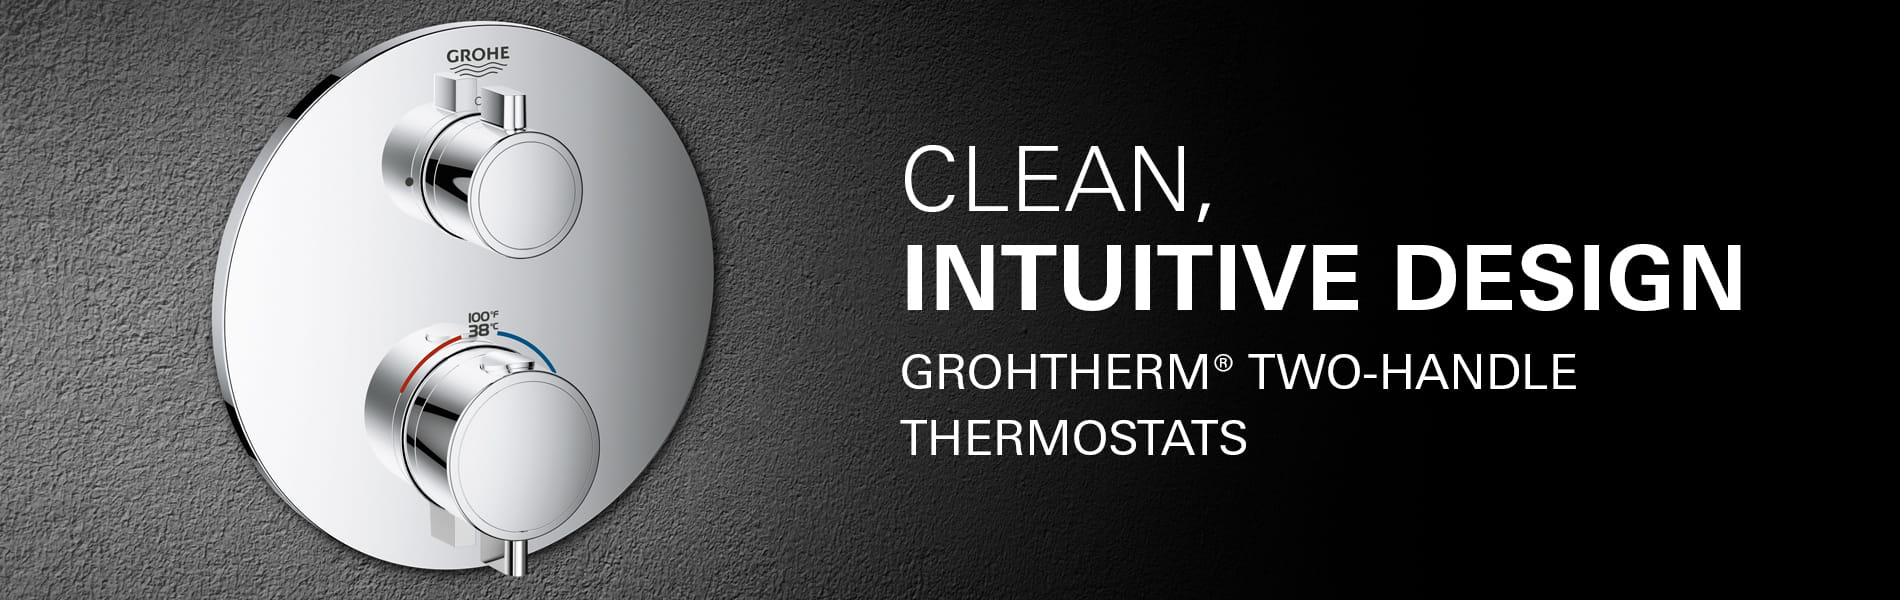 grotherm 2 handle thermostat